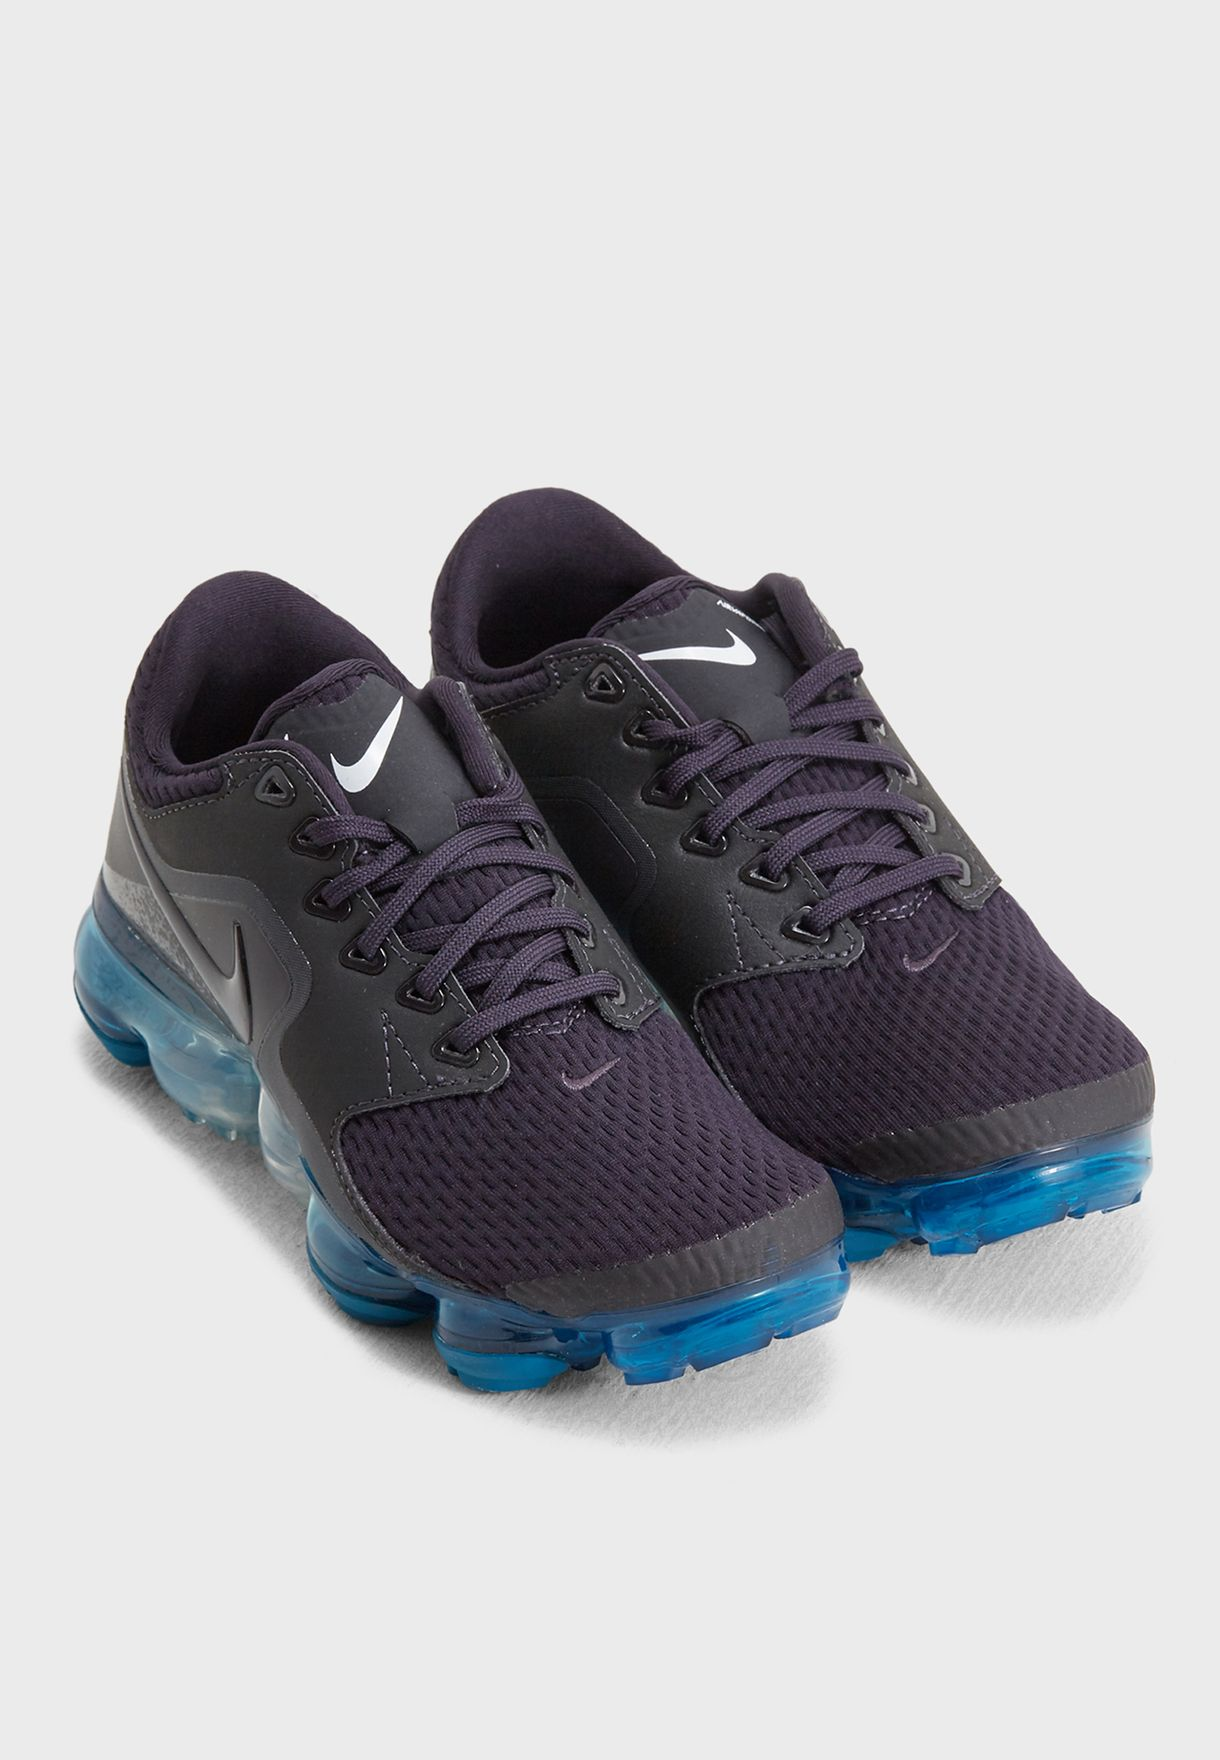 a829fd79ba7 Shop Nike grey Youth Air Vapormax 917963-031 for Kids in UAE ...